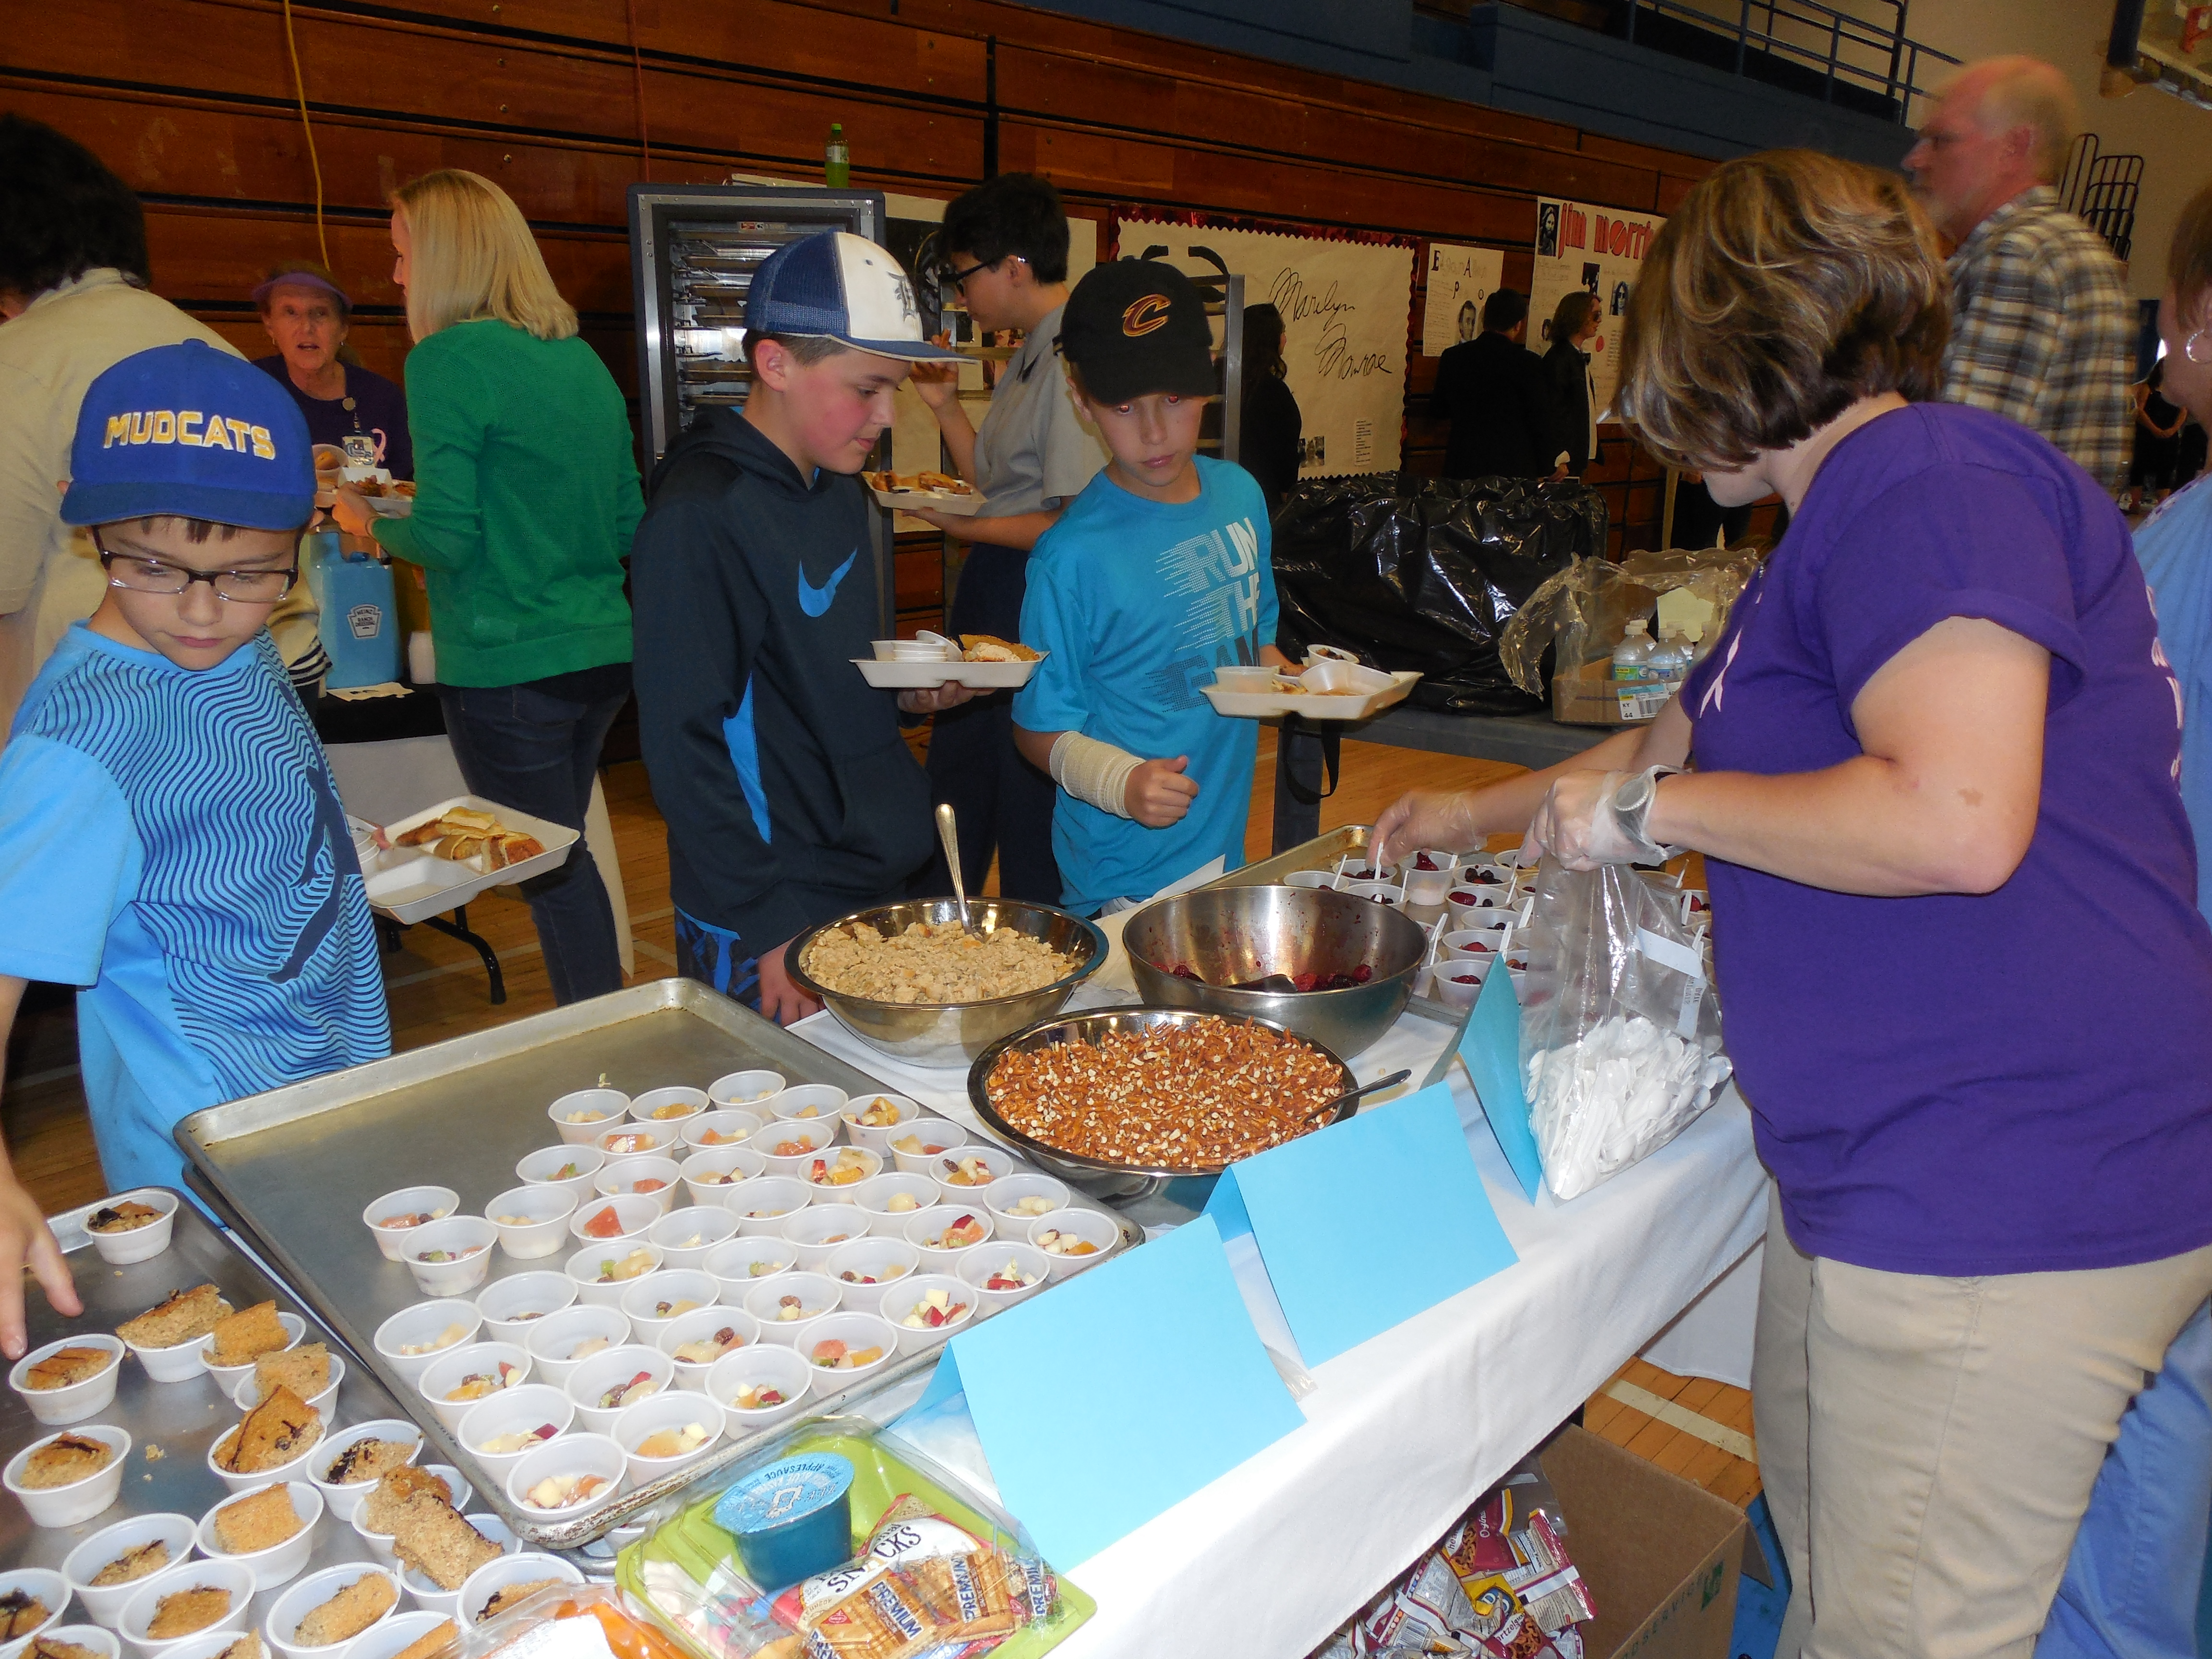 The 5th annual Clinton County Schools Taste Test Sampler was held at Clinton County High School on April 18th.